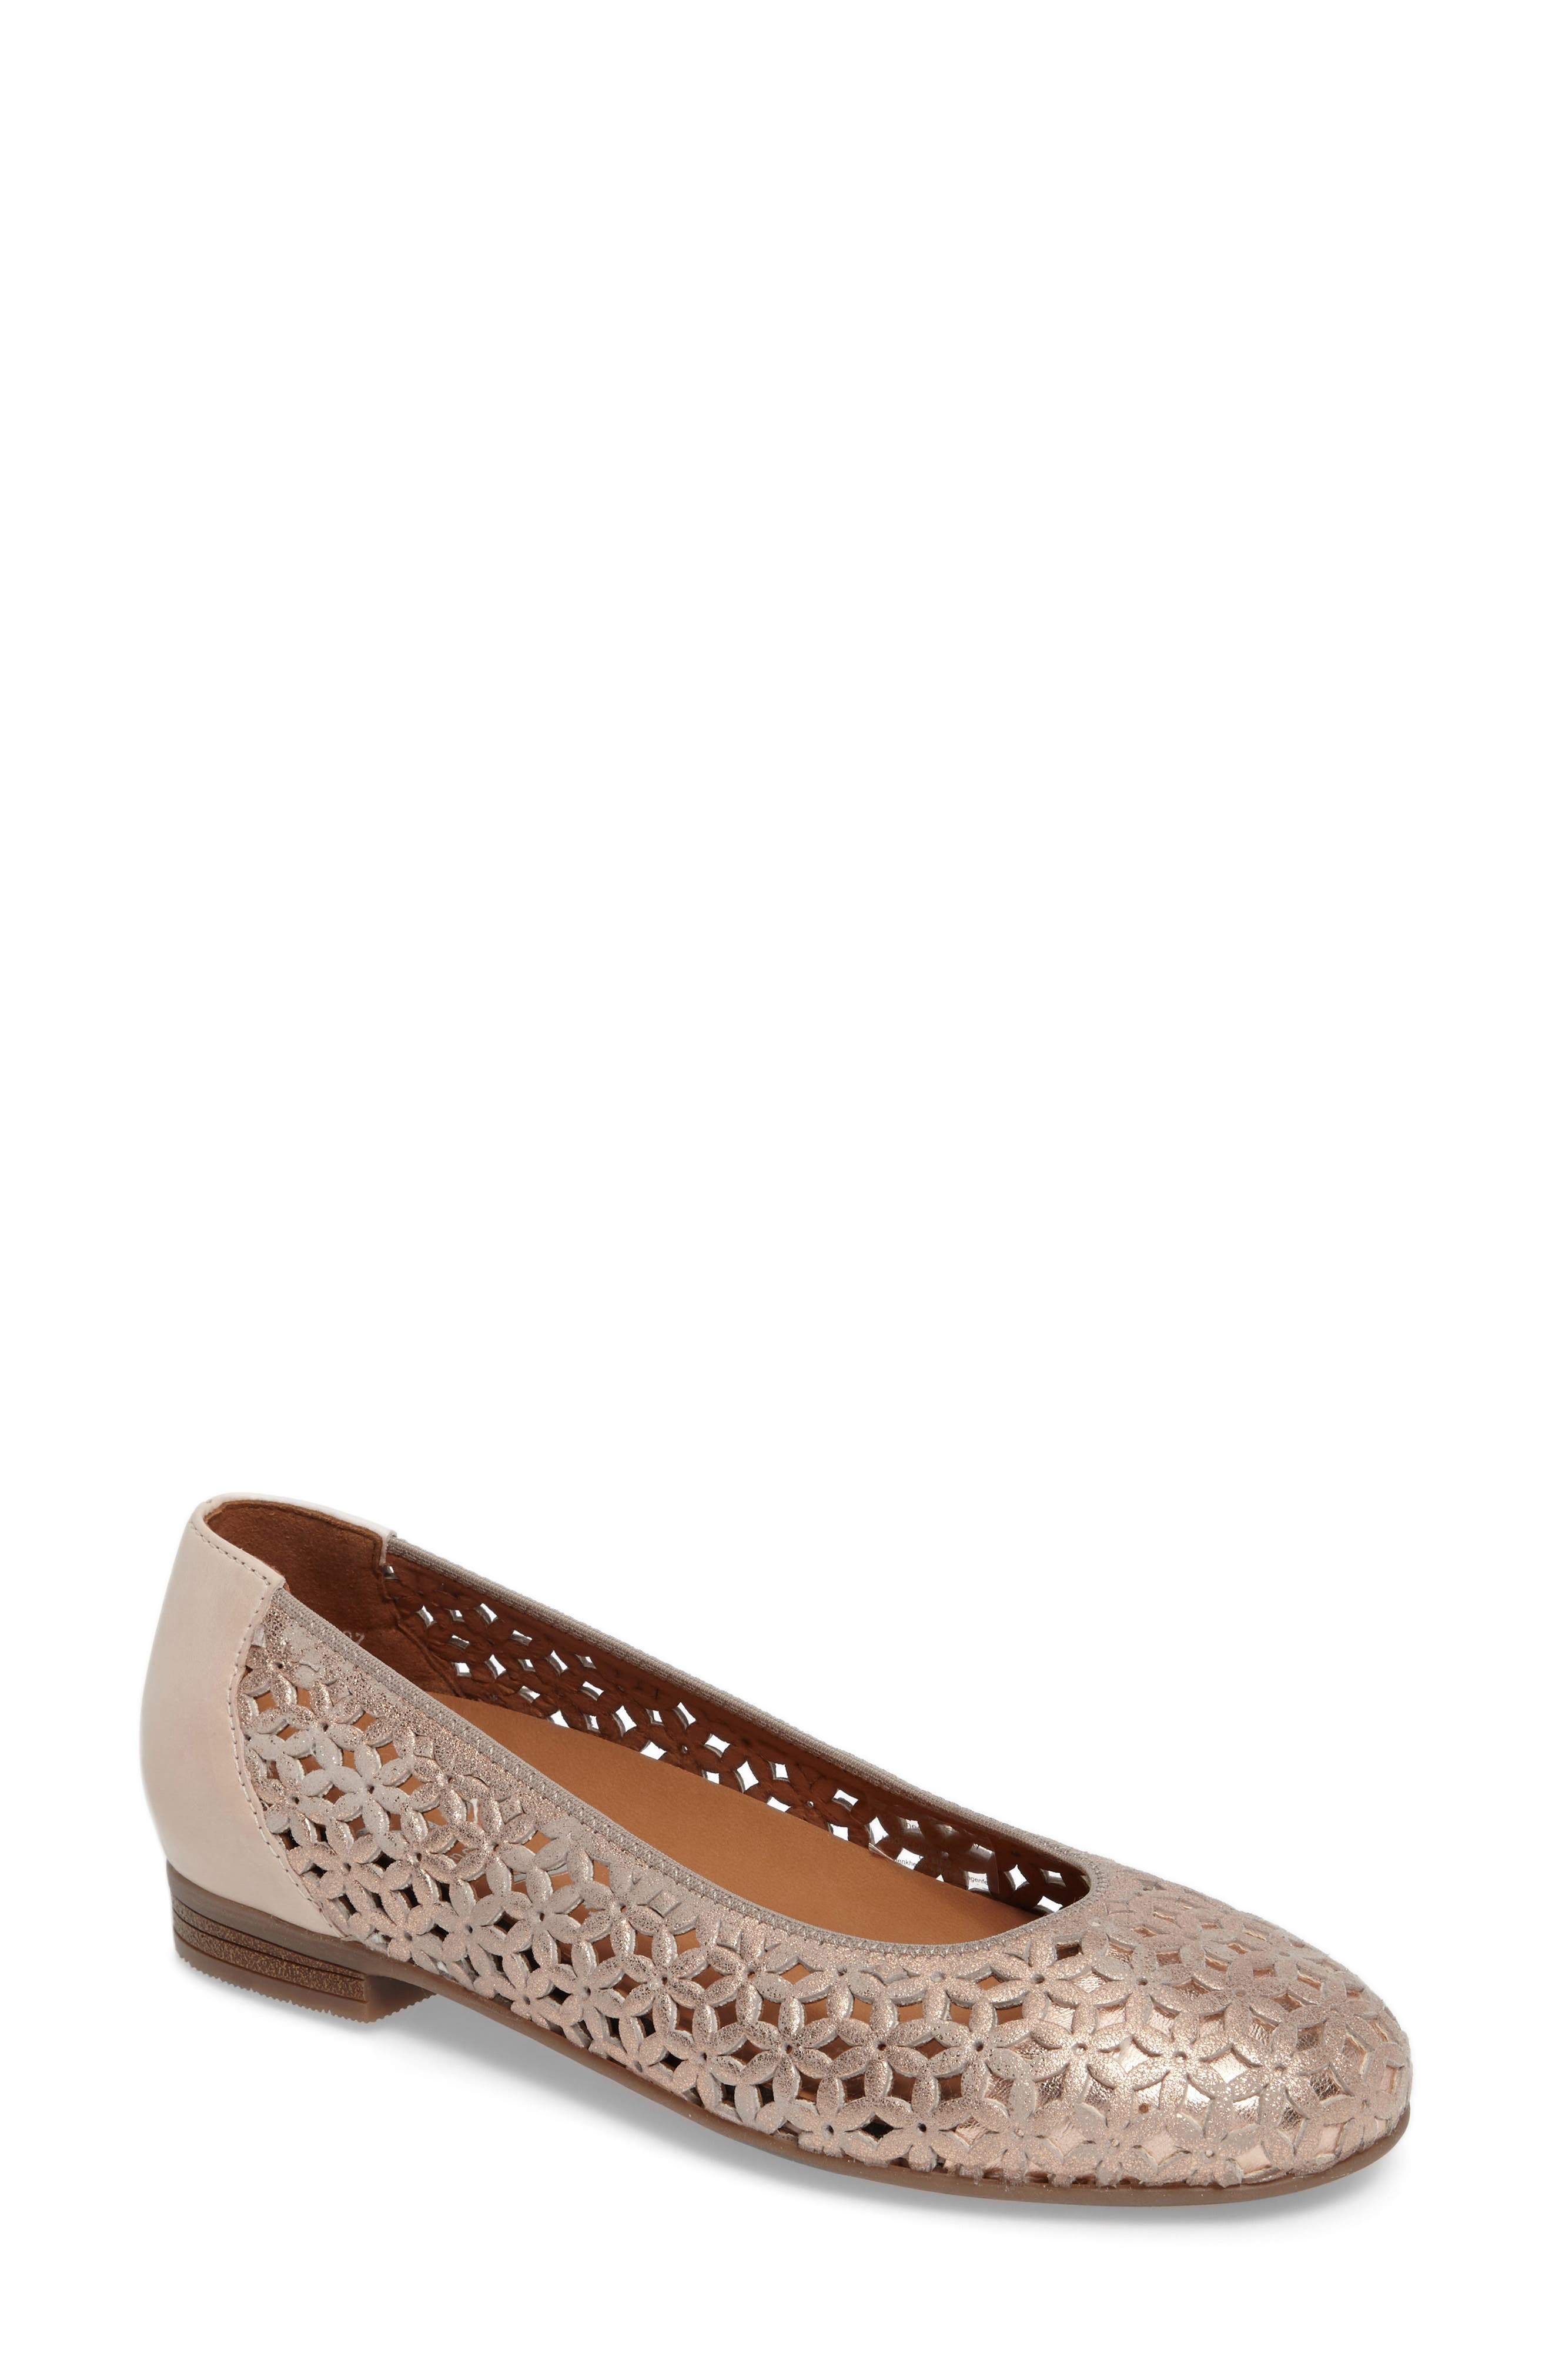 Main Image - ara Stephanie Perforated Ballet Flat (Women)